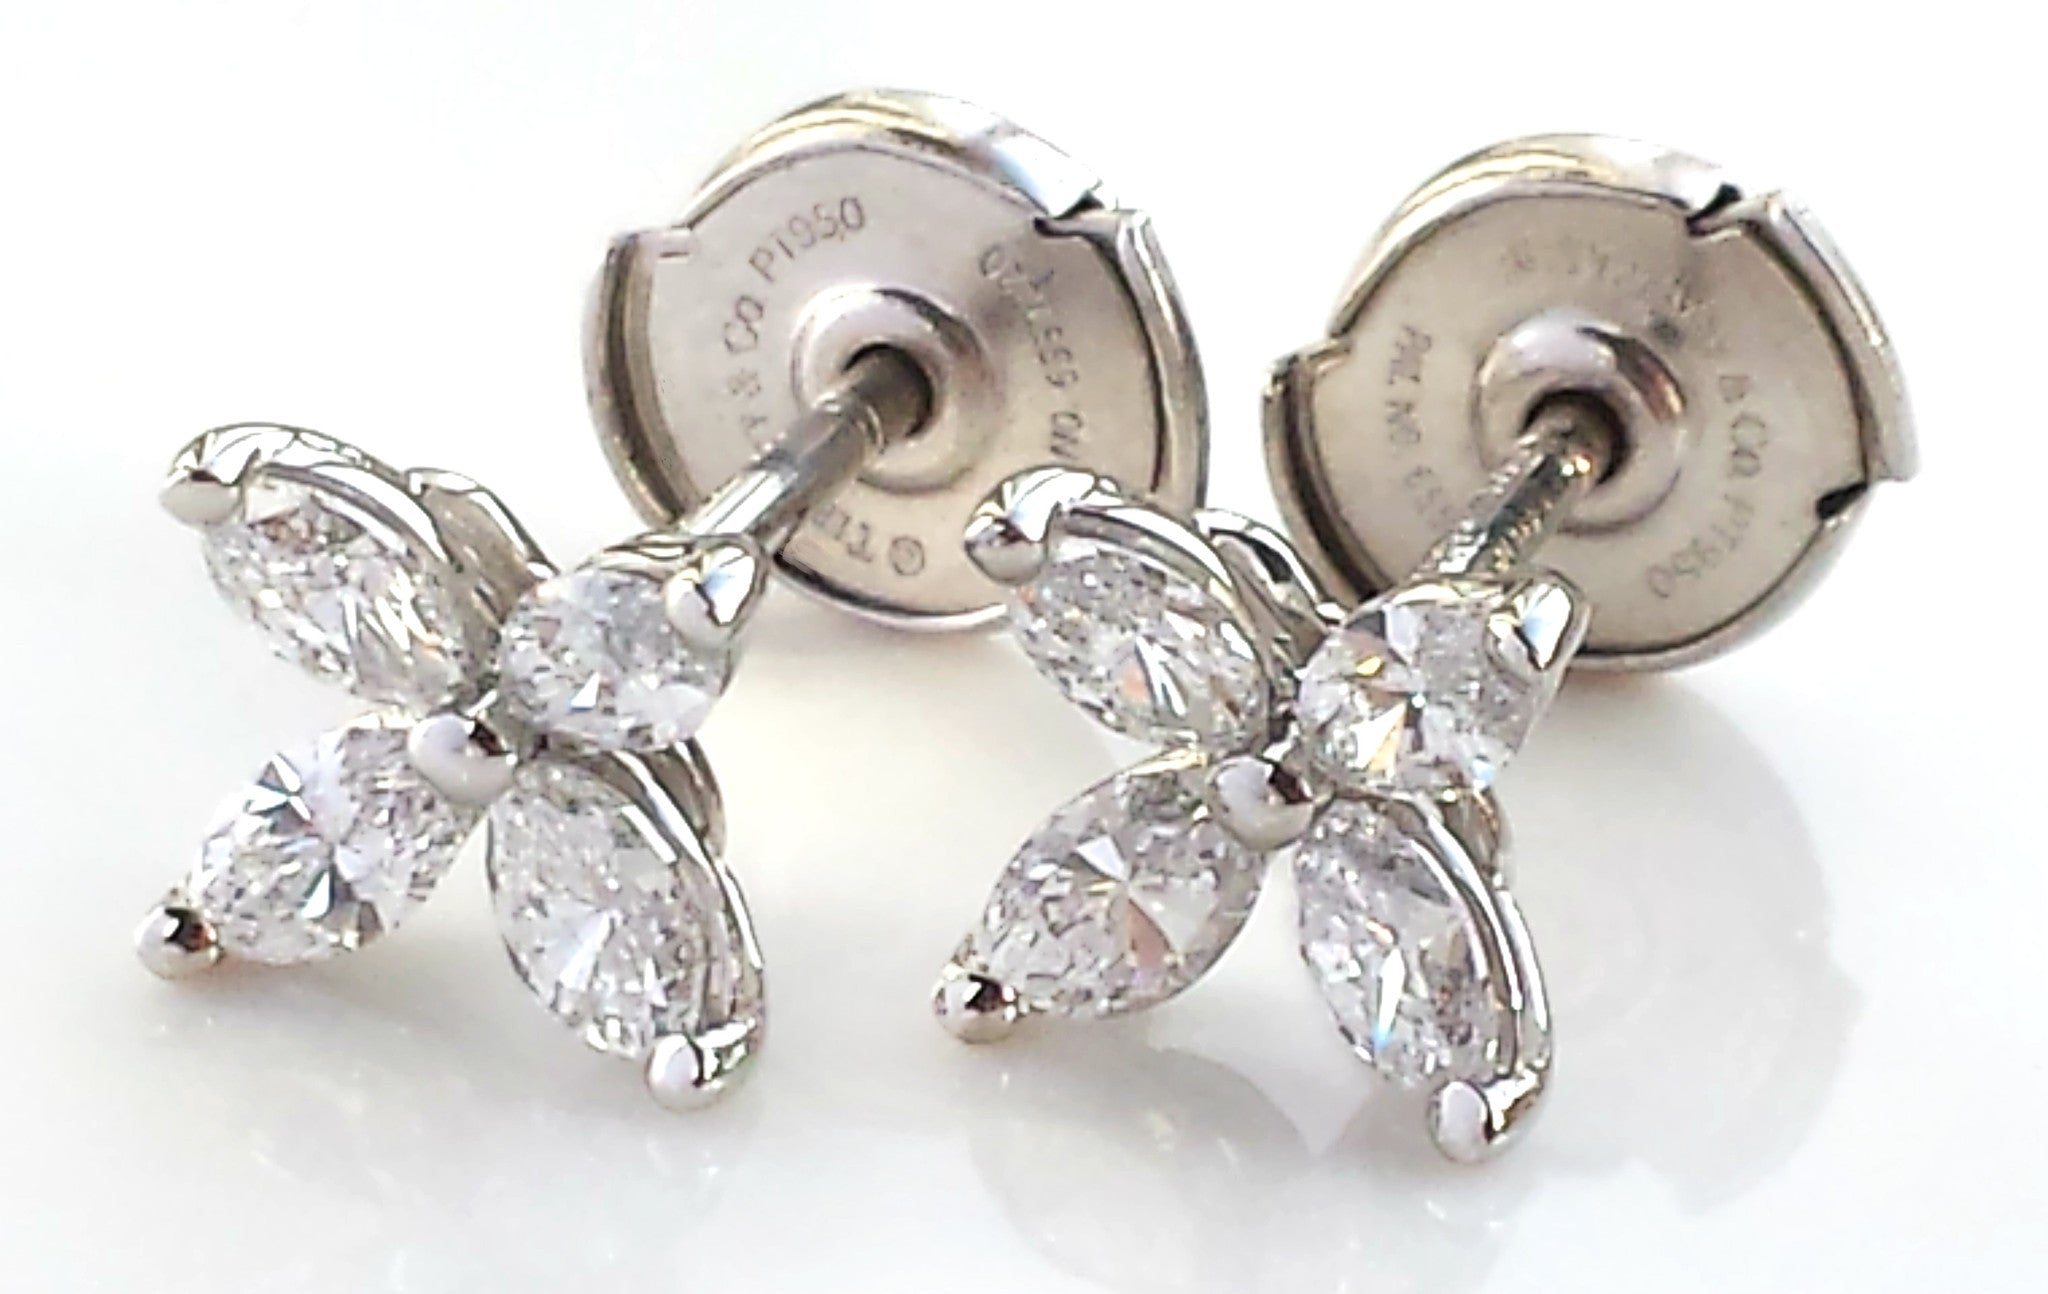 a1826e63f Tiffany & Co. Diamond & Platinum Victoria Earrings 0.64ct, Small, Original  Box